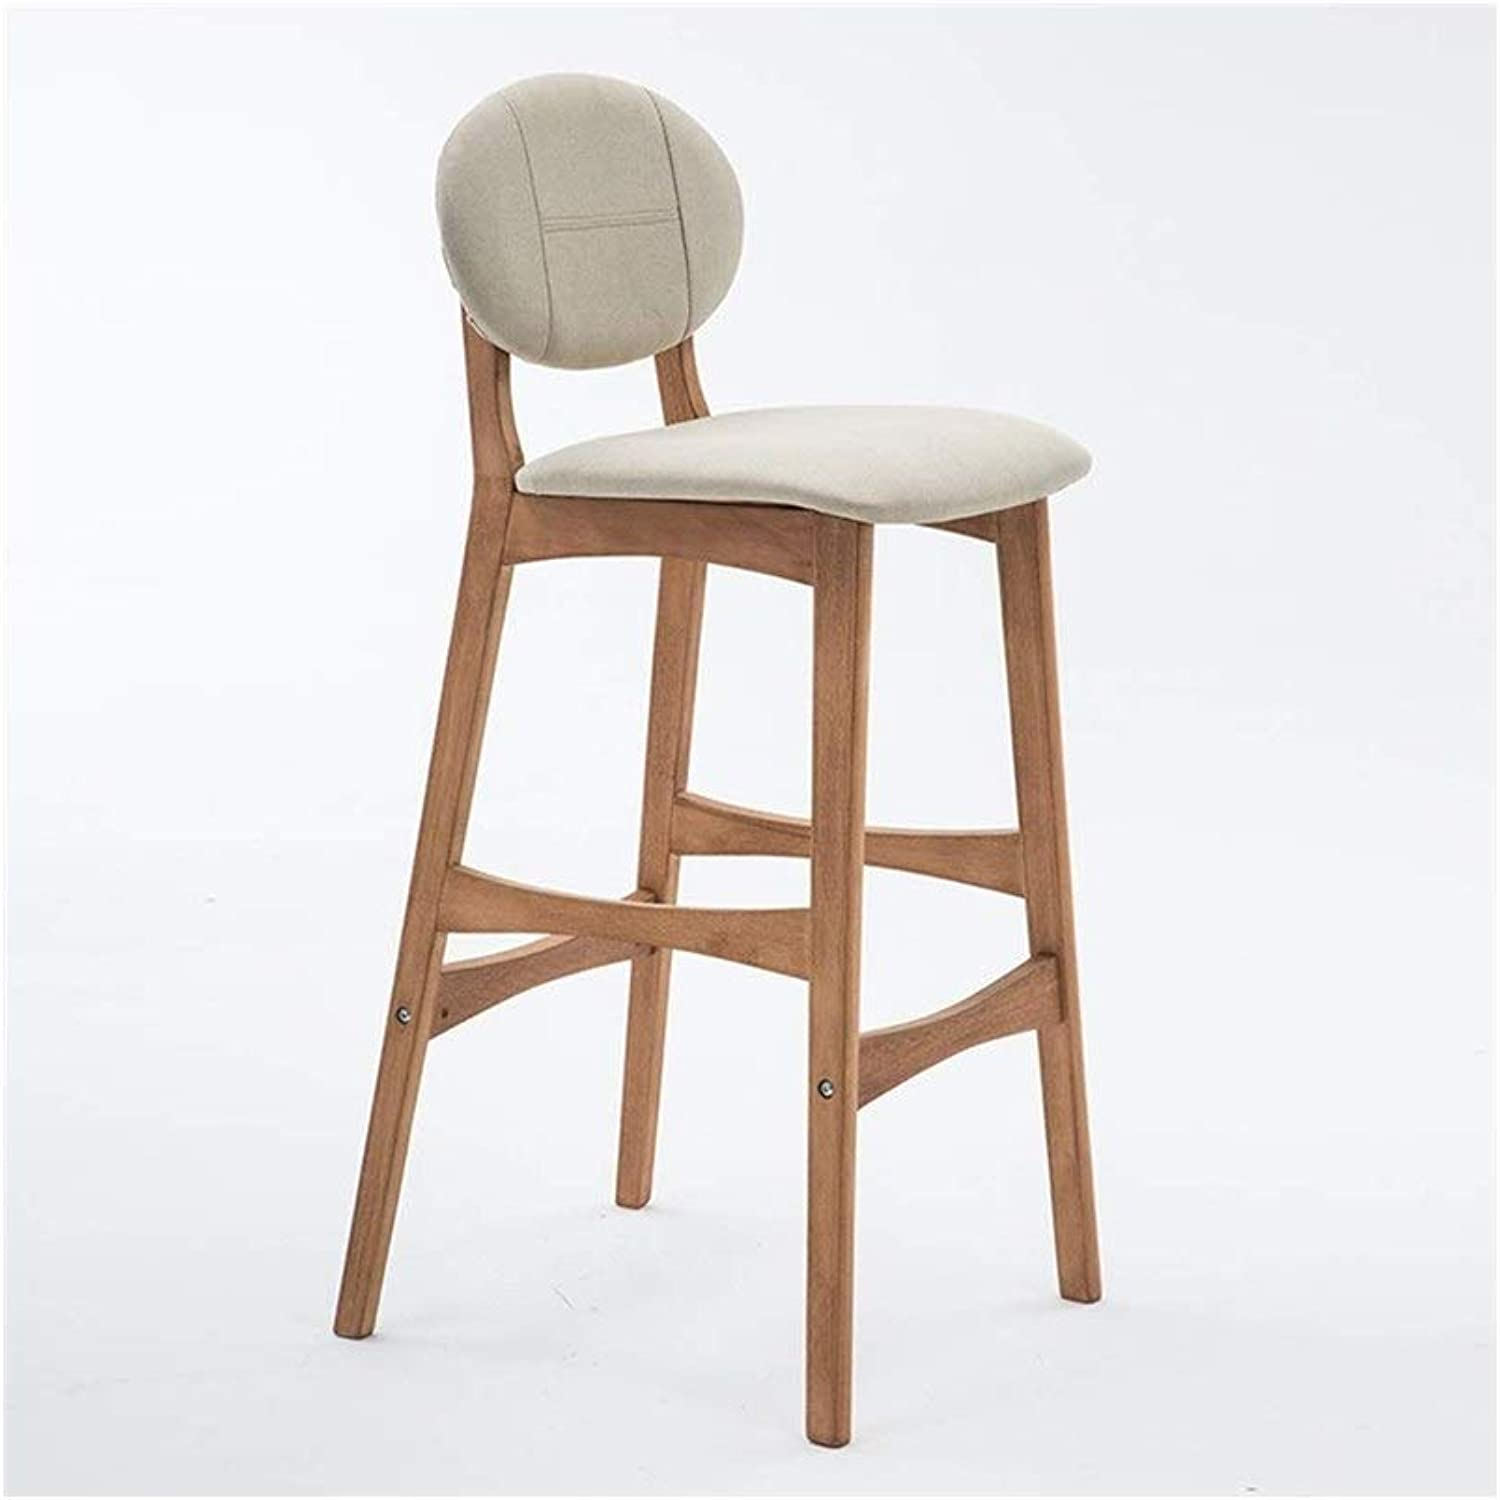 Bar Stool Beech Wood Linen Cotton Pad Bar Chair High Stool Modern Dining Chair Suitable for Bar Cafe Restaurant Front Desk FENPING (color   White, Size   64cm)